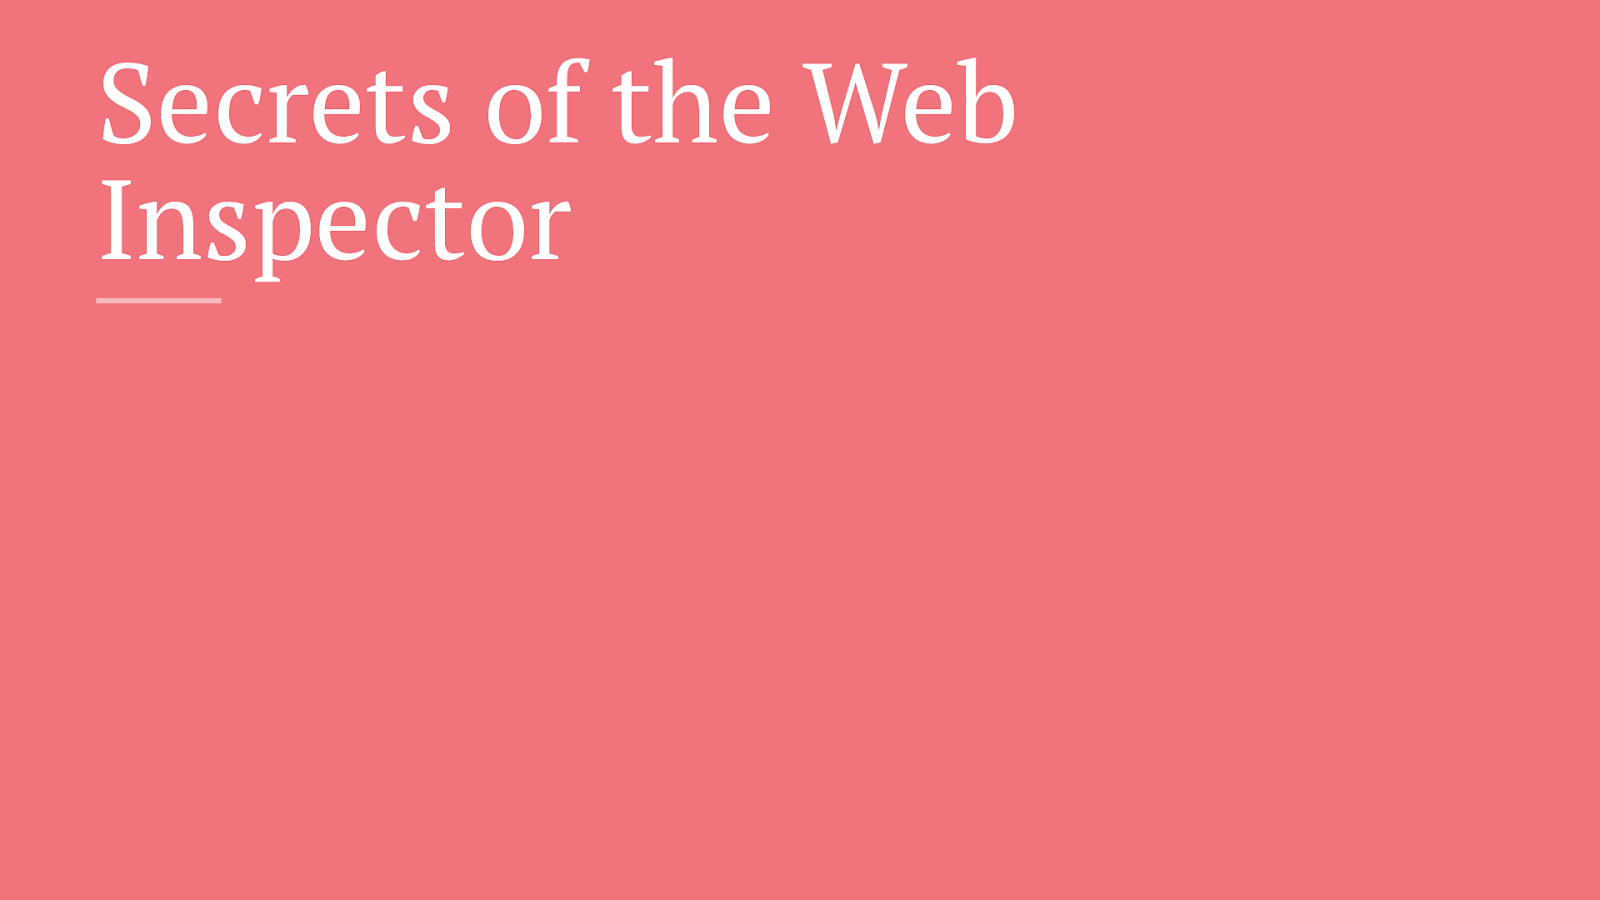 Secrets of the Web Inspector